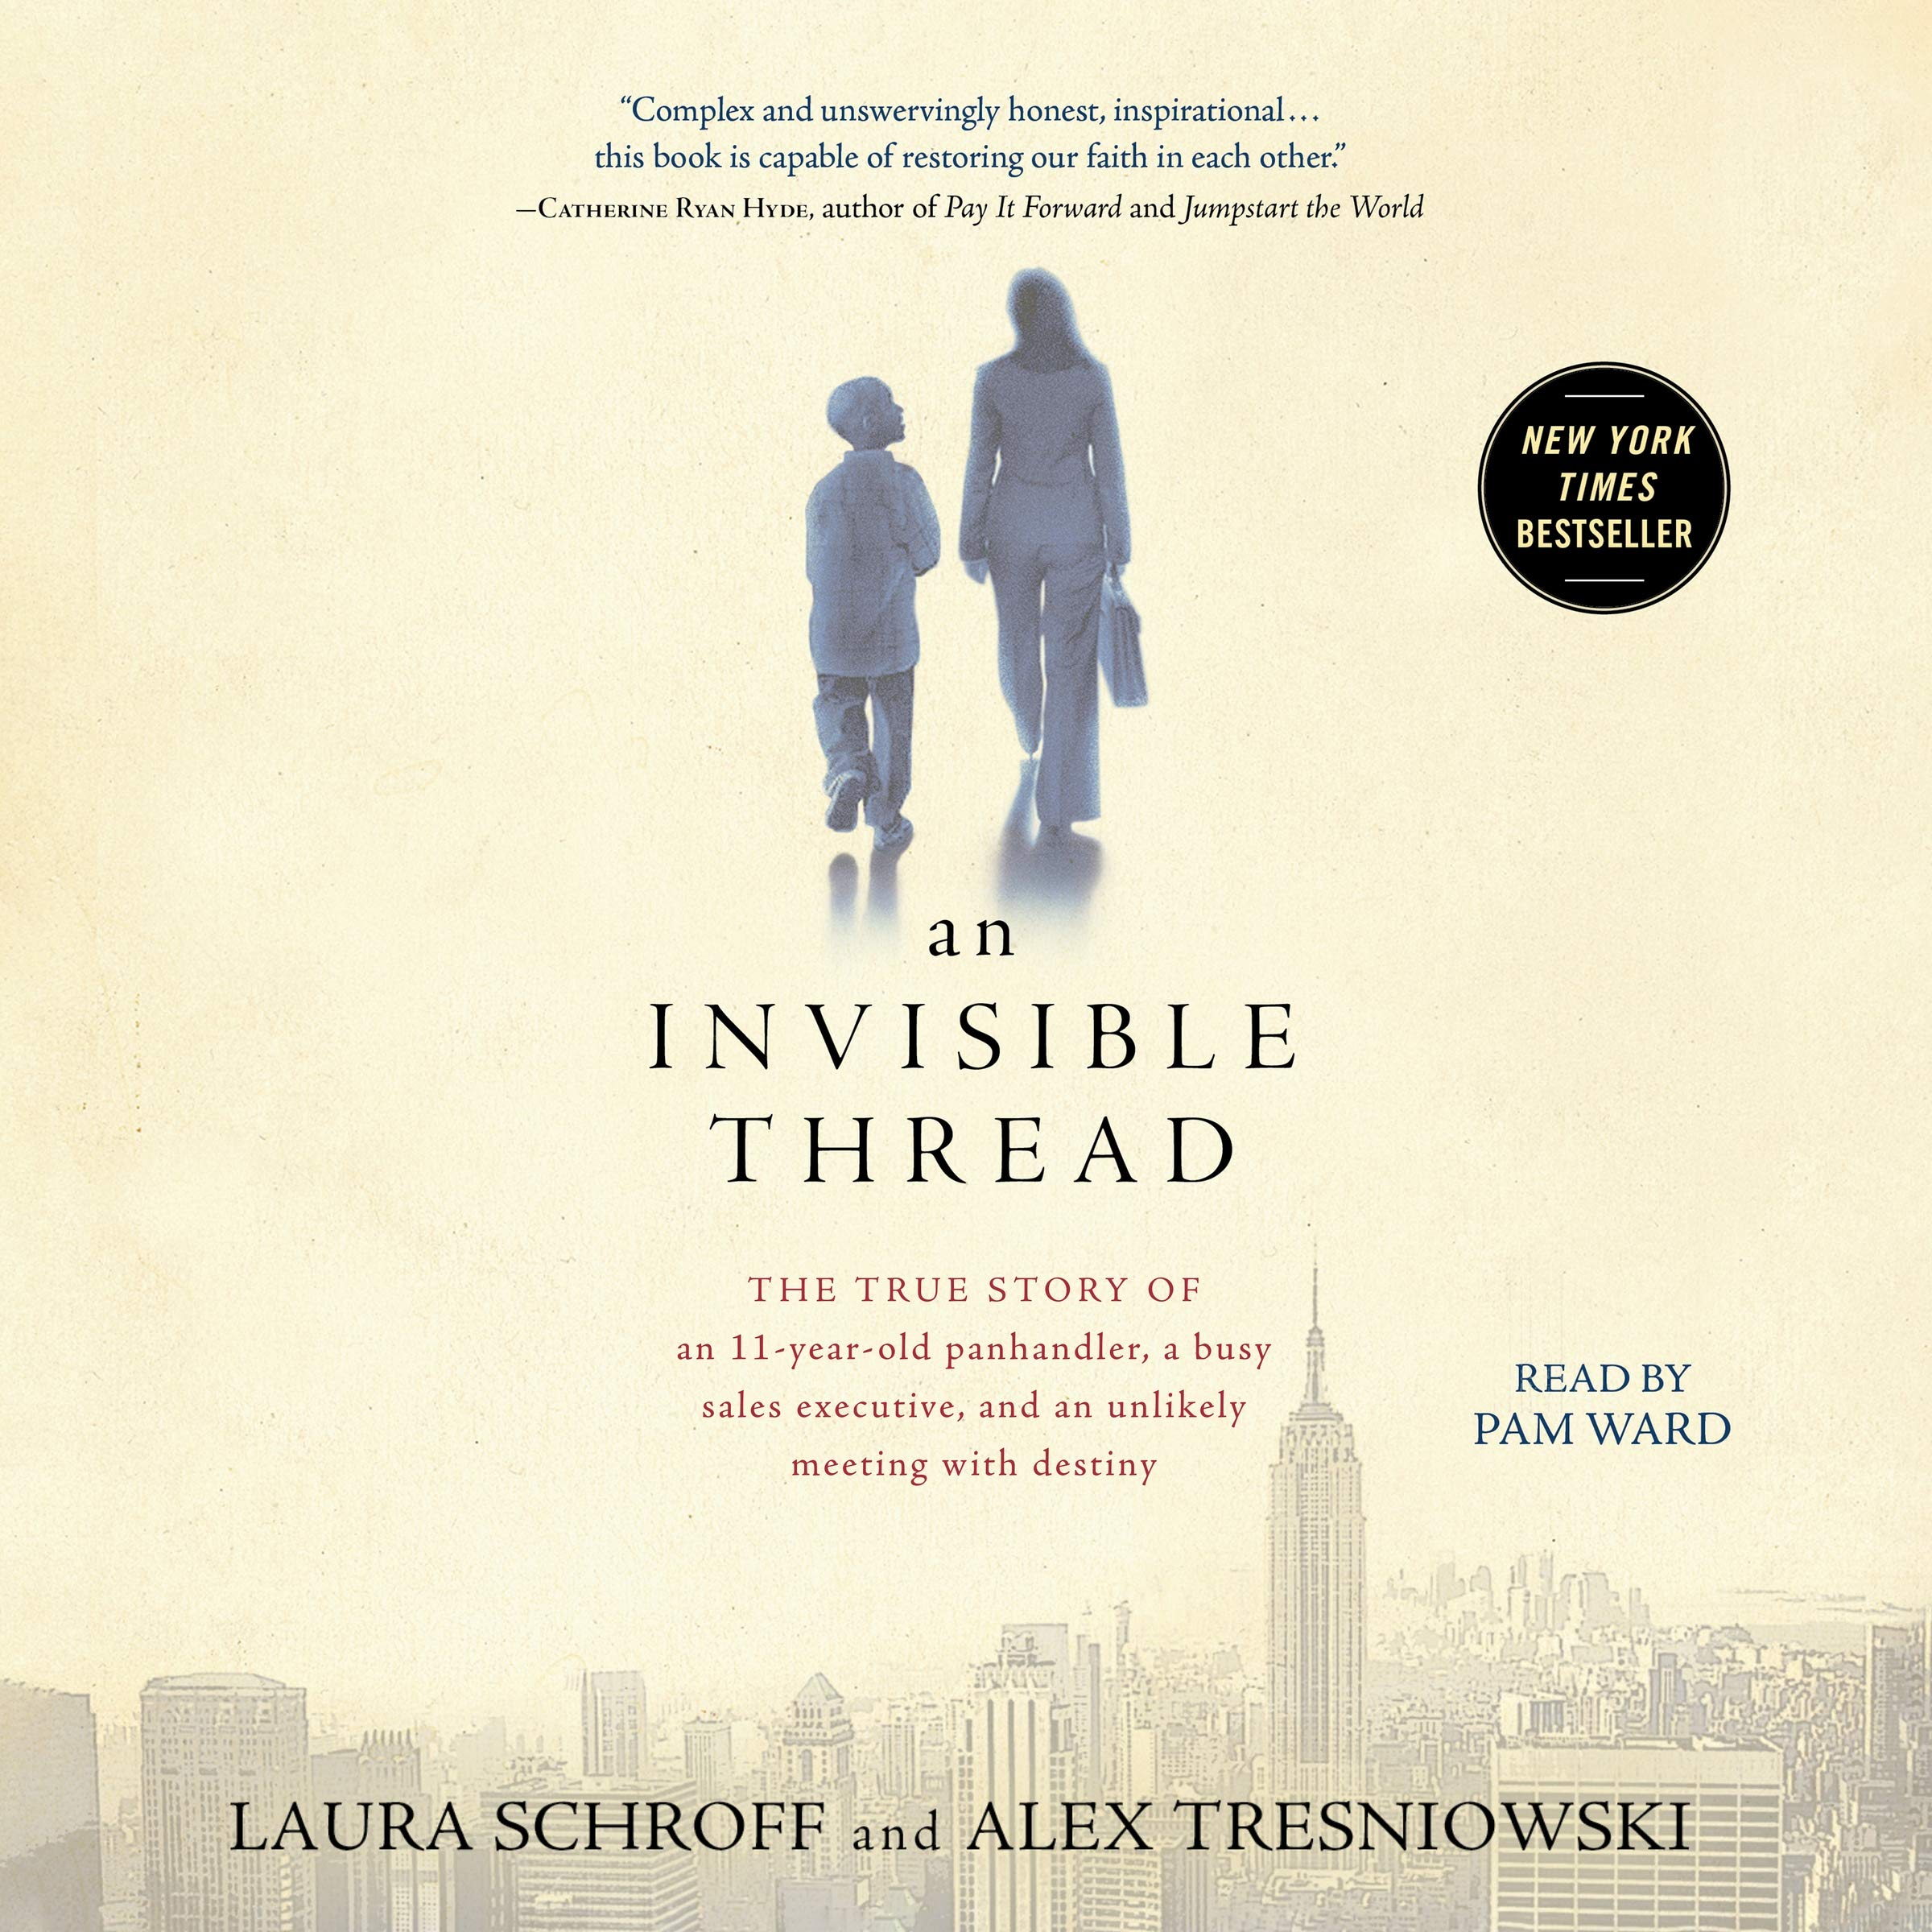 The Invisible Boy: Based on a True Story